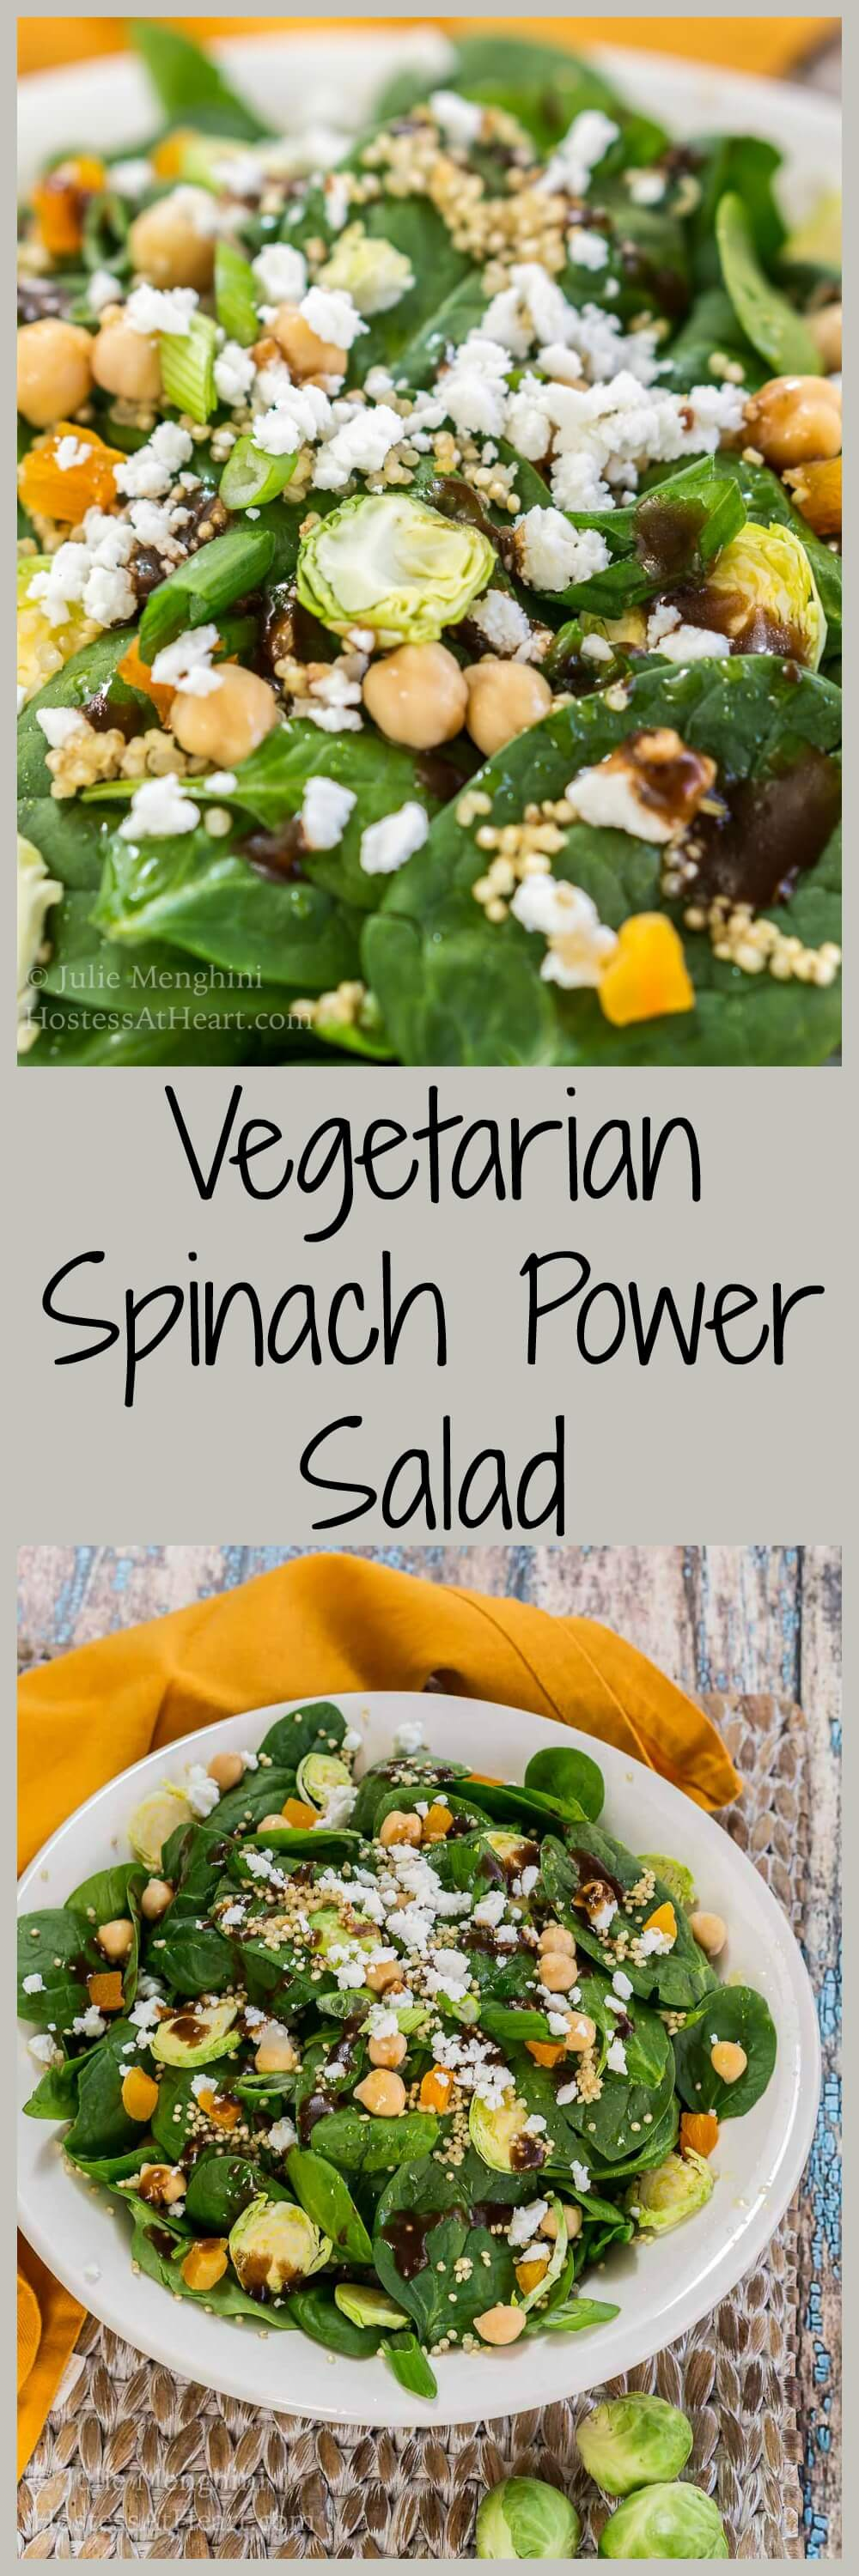 Popeye Approved Vegetarian Spinach Power Salad is full of good for you ingredients, flavor and texture that will leave you feeling healthy and satisfied. | HostessAtHeart.com #healthyfood #spinachsaladrecipes #whatsforlunch #vegetarianfood #spinachsalad | Spinach Salad | Healthy Meal Ideas | Dinner Salads | Vegetarian Recipes